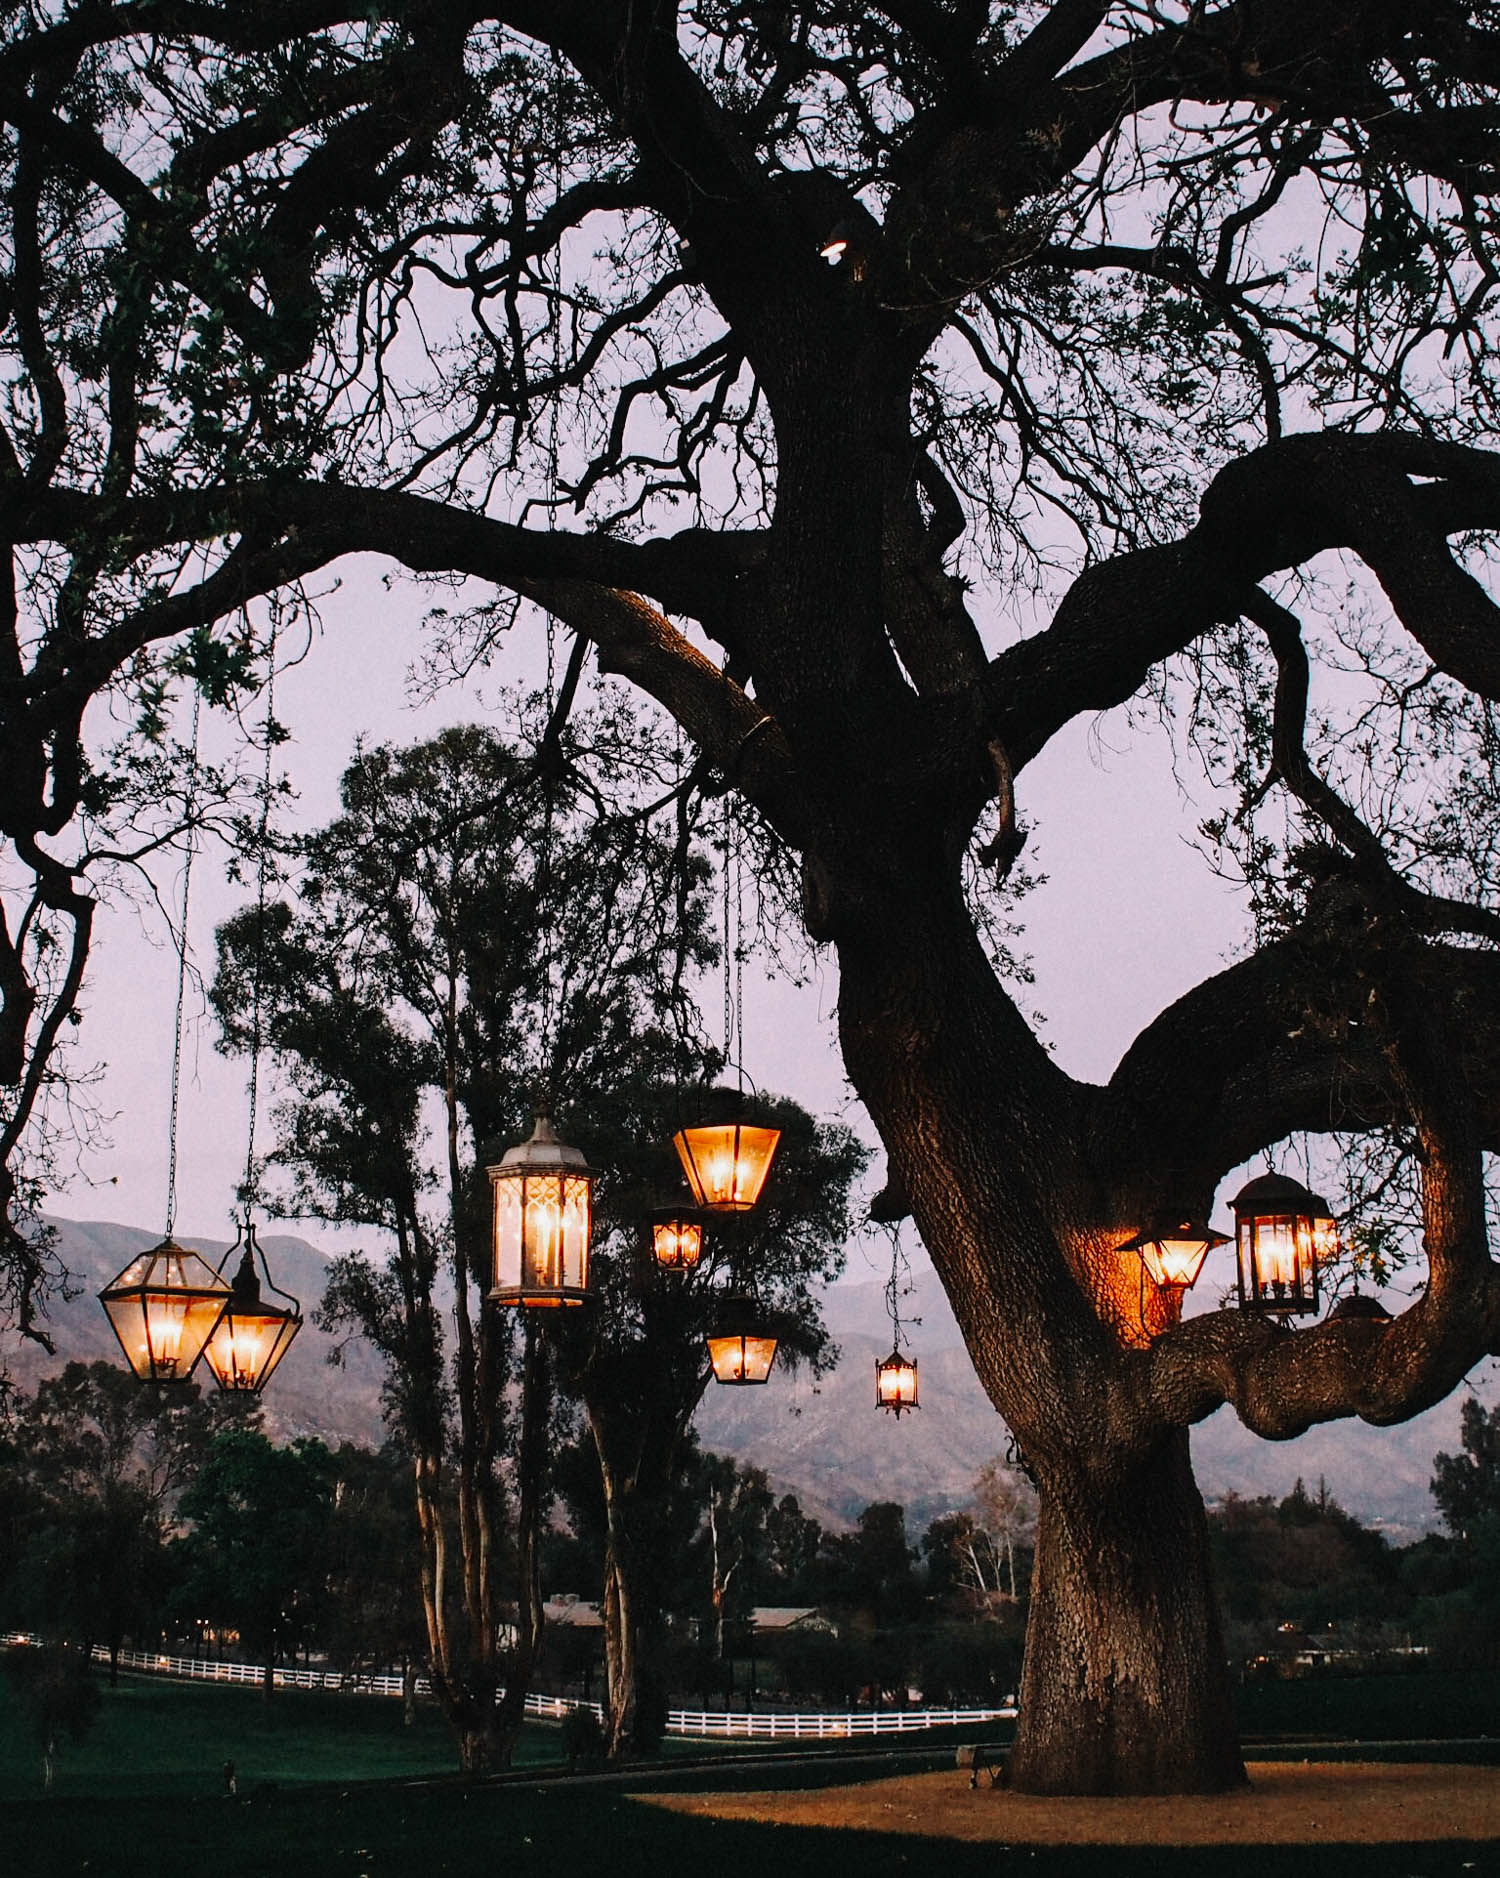 48 Hours in Ojai - Where to stay, eat and shop | A Fabulous Fete